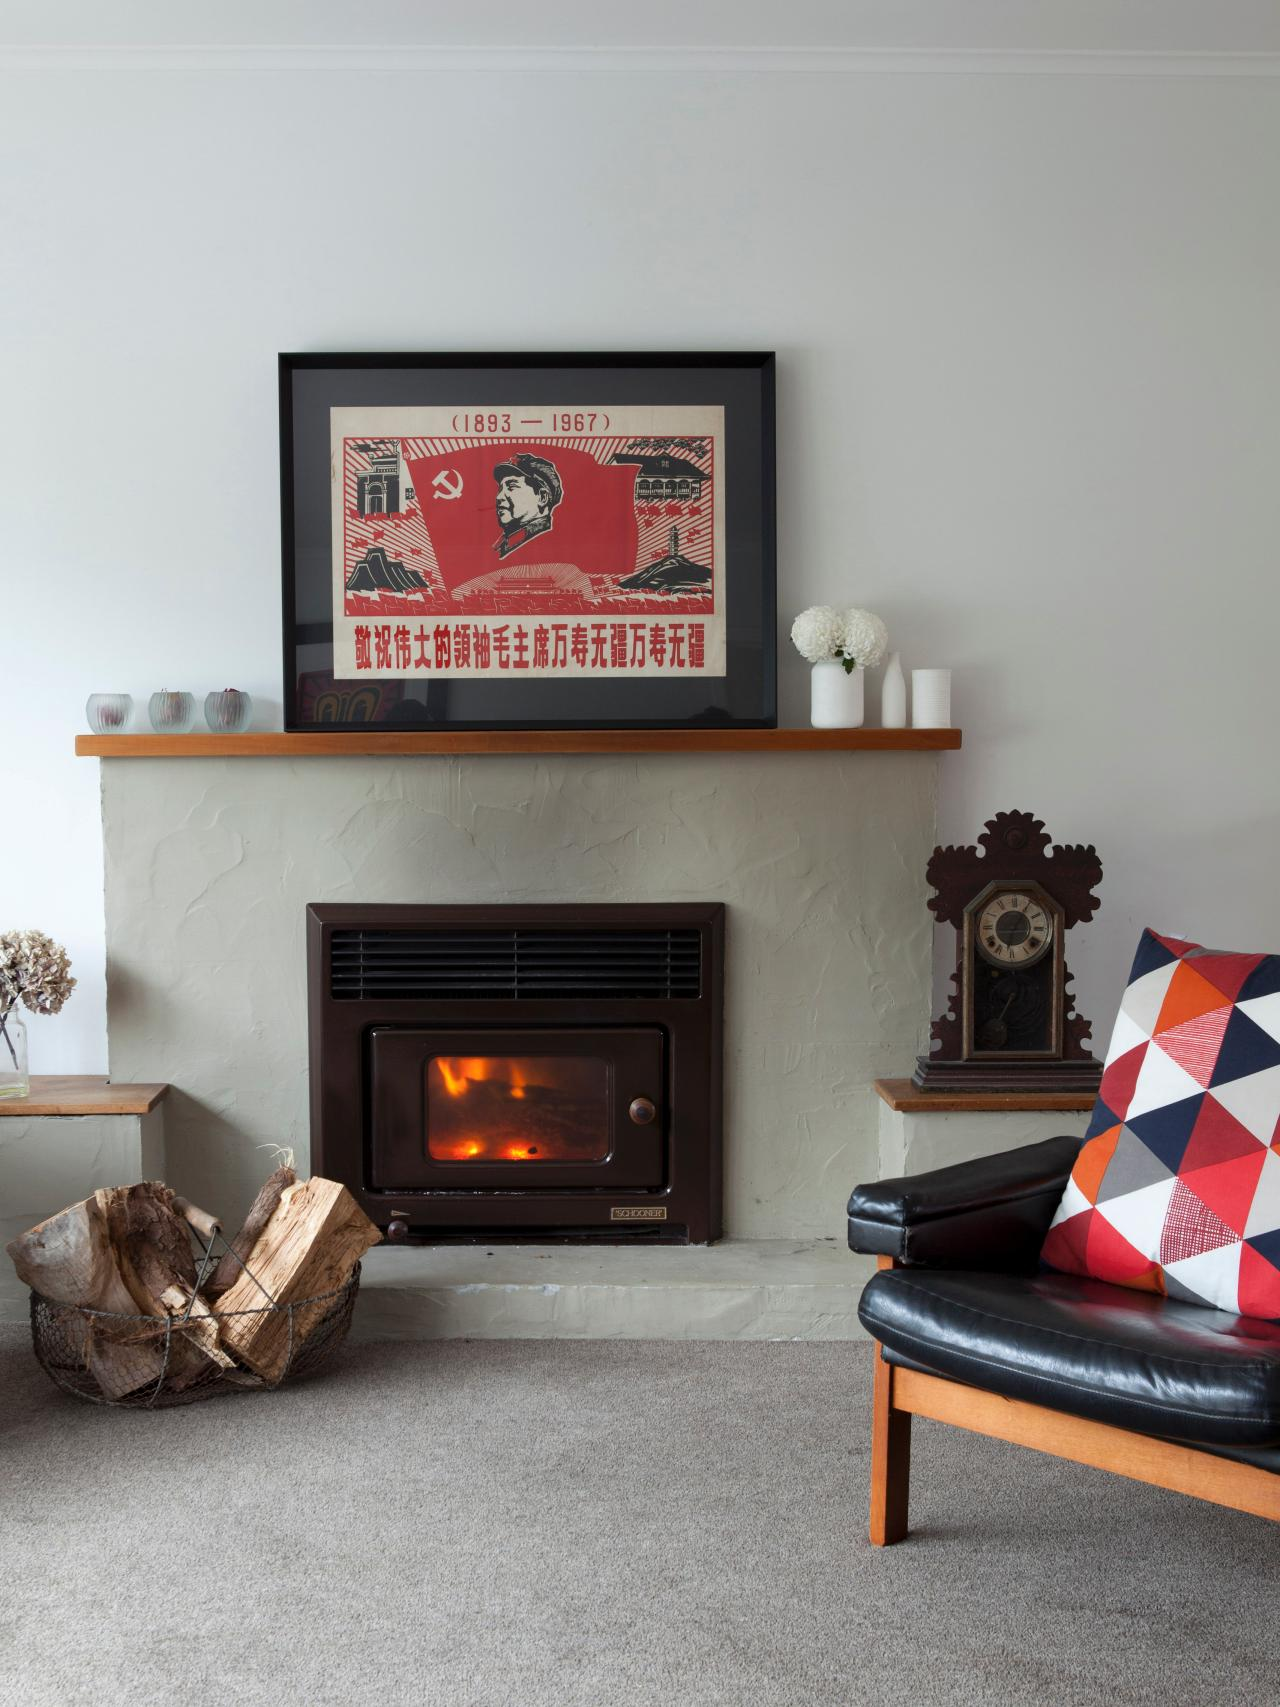 Get expert design ideas and tips from HGTV Remodels for adding and decorating a hot fireplace in your living room.